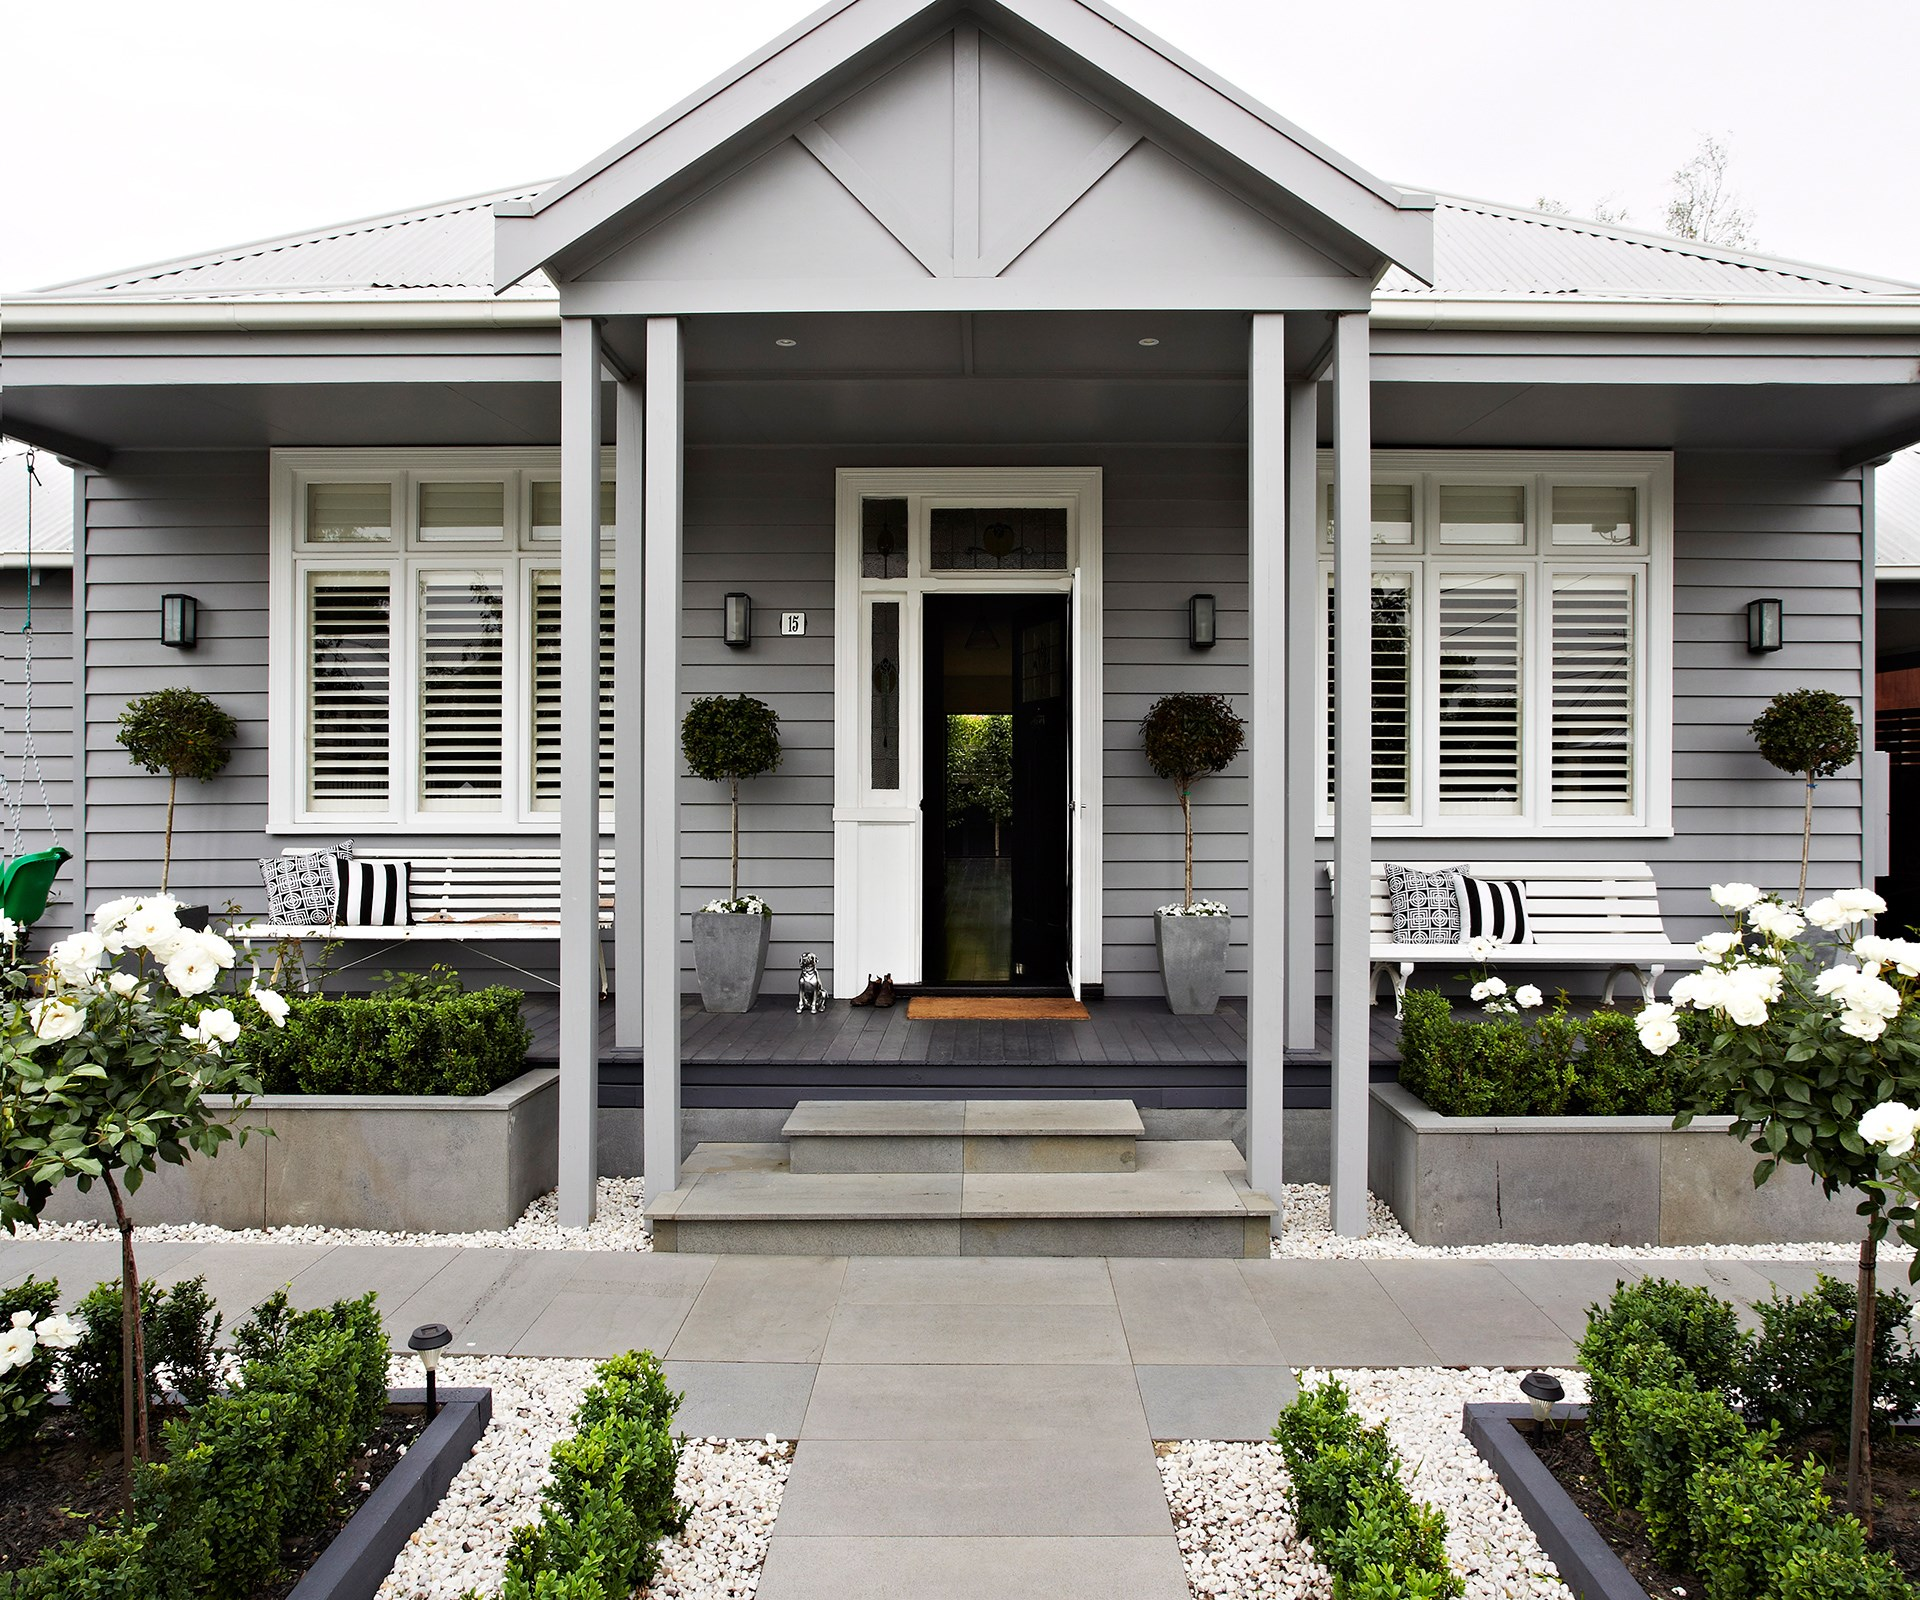 """Create a home that turns heads by [transforming your front garden](http://www.homestolove.com.au/hello-beautiful-how-to-create-a-welcoming-front-garden-1771